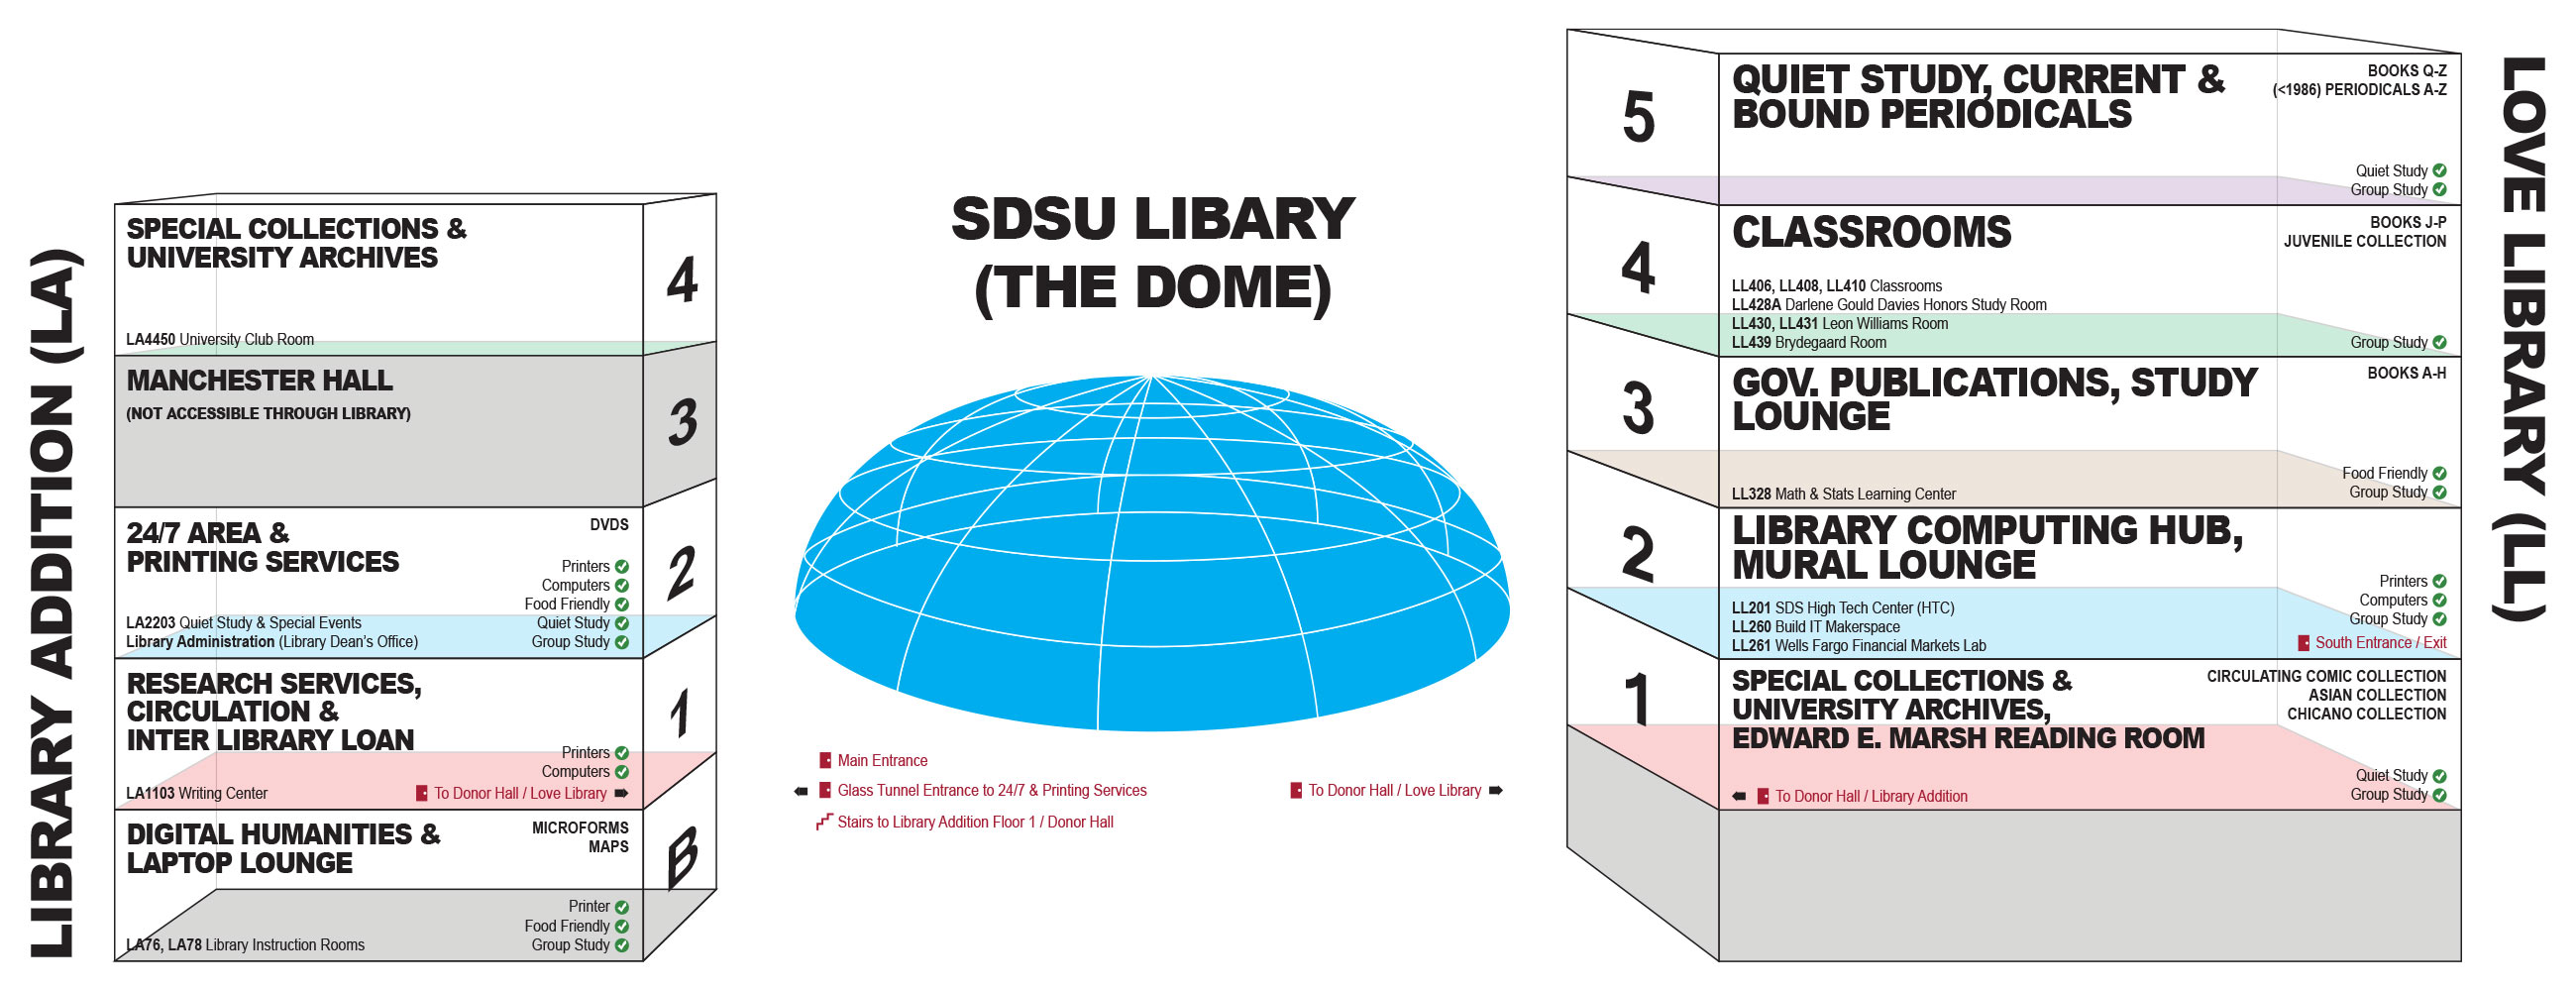 sdsu library floor guide